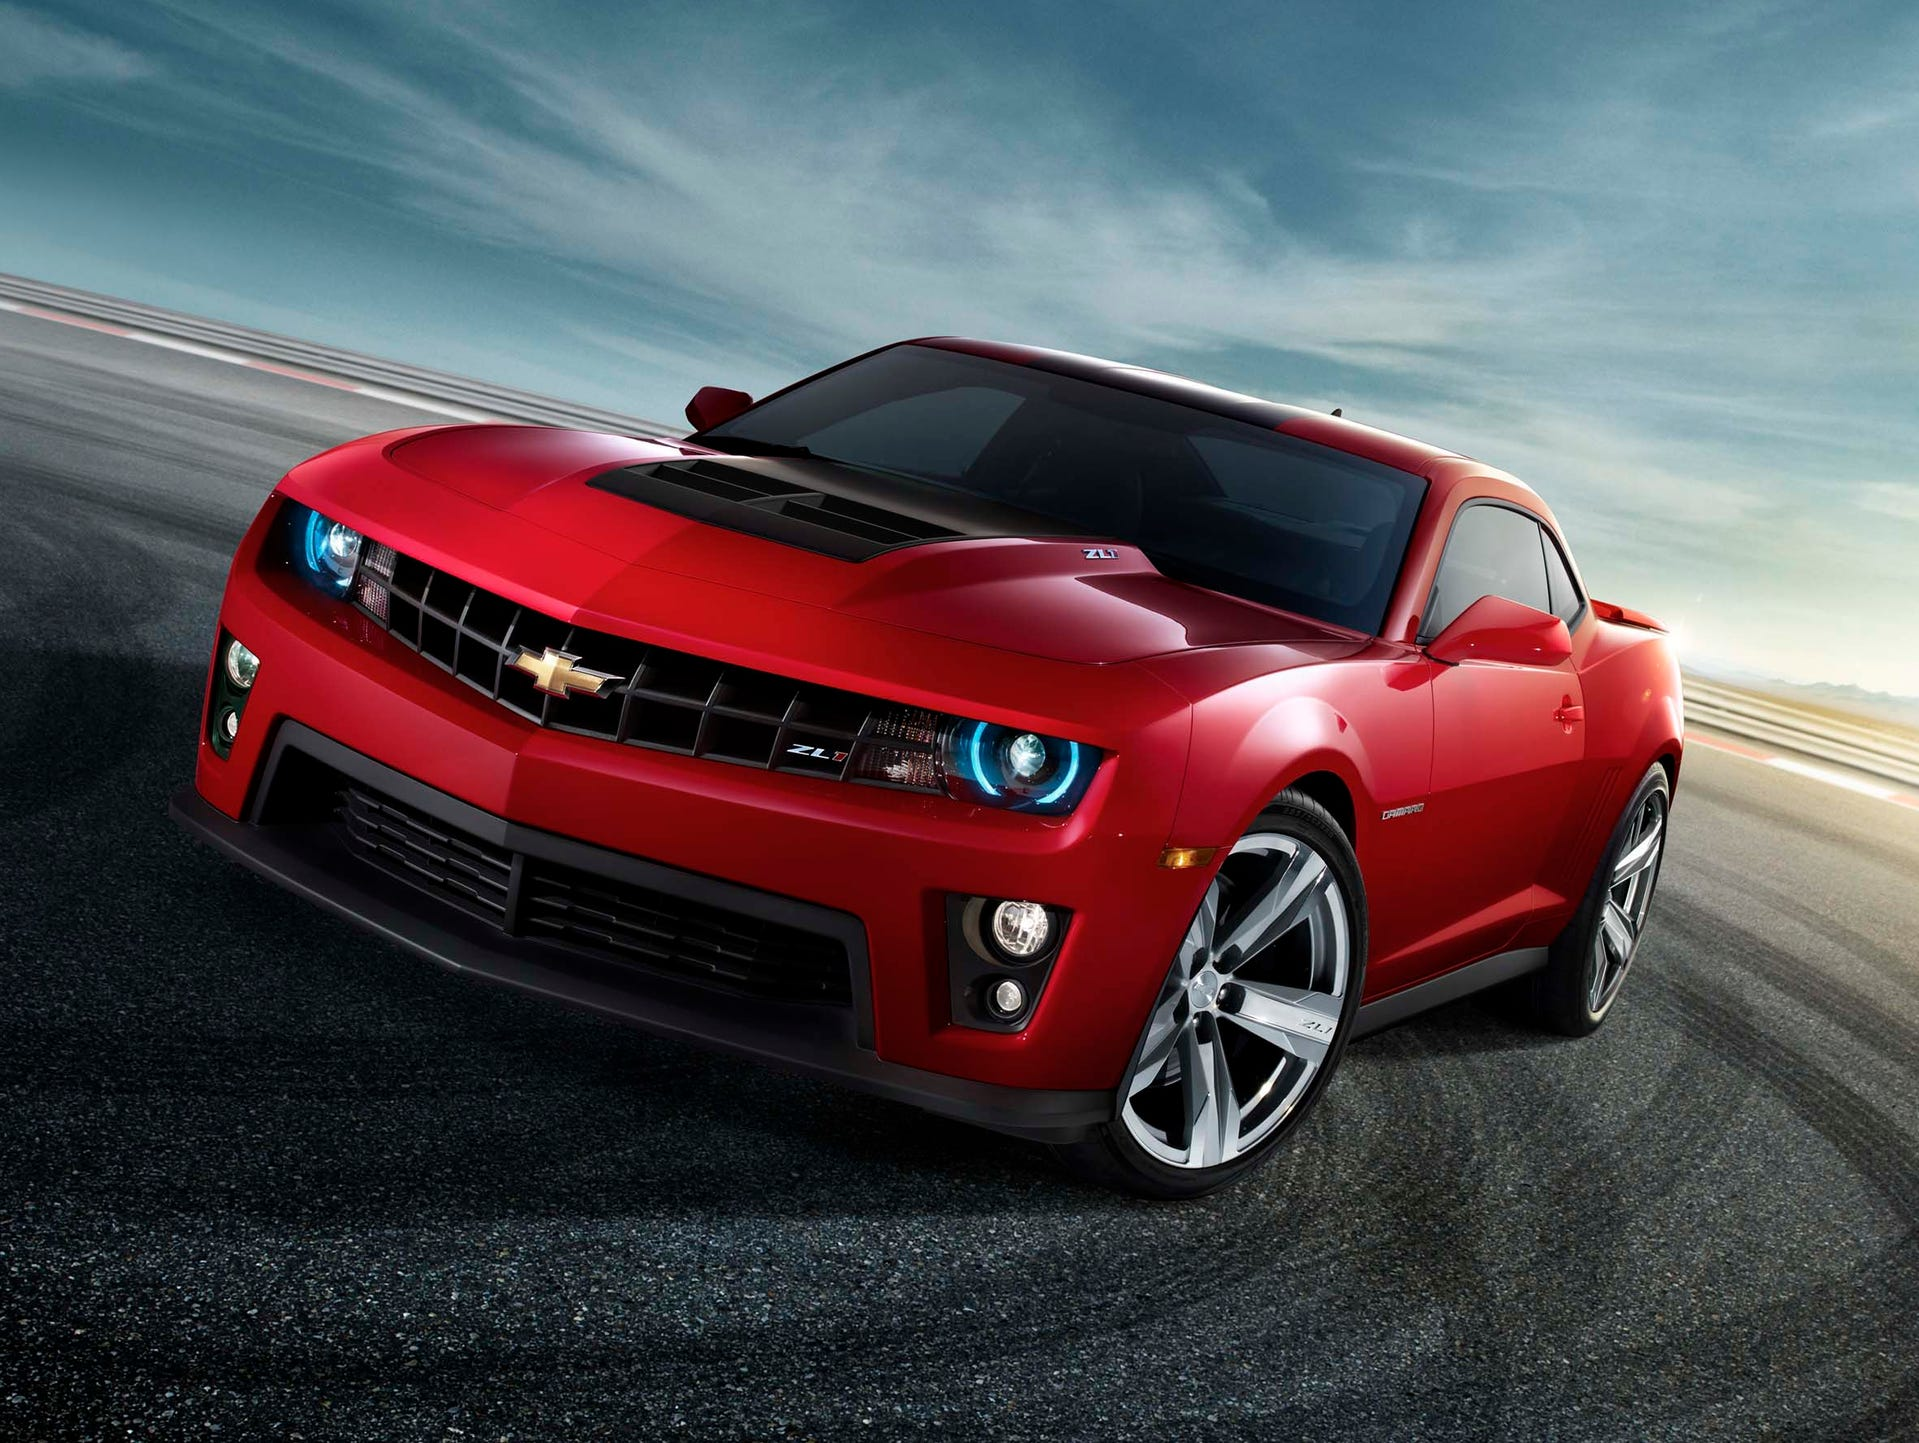 2012: The arms race for pony-car hegemony was on against